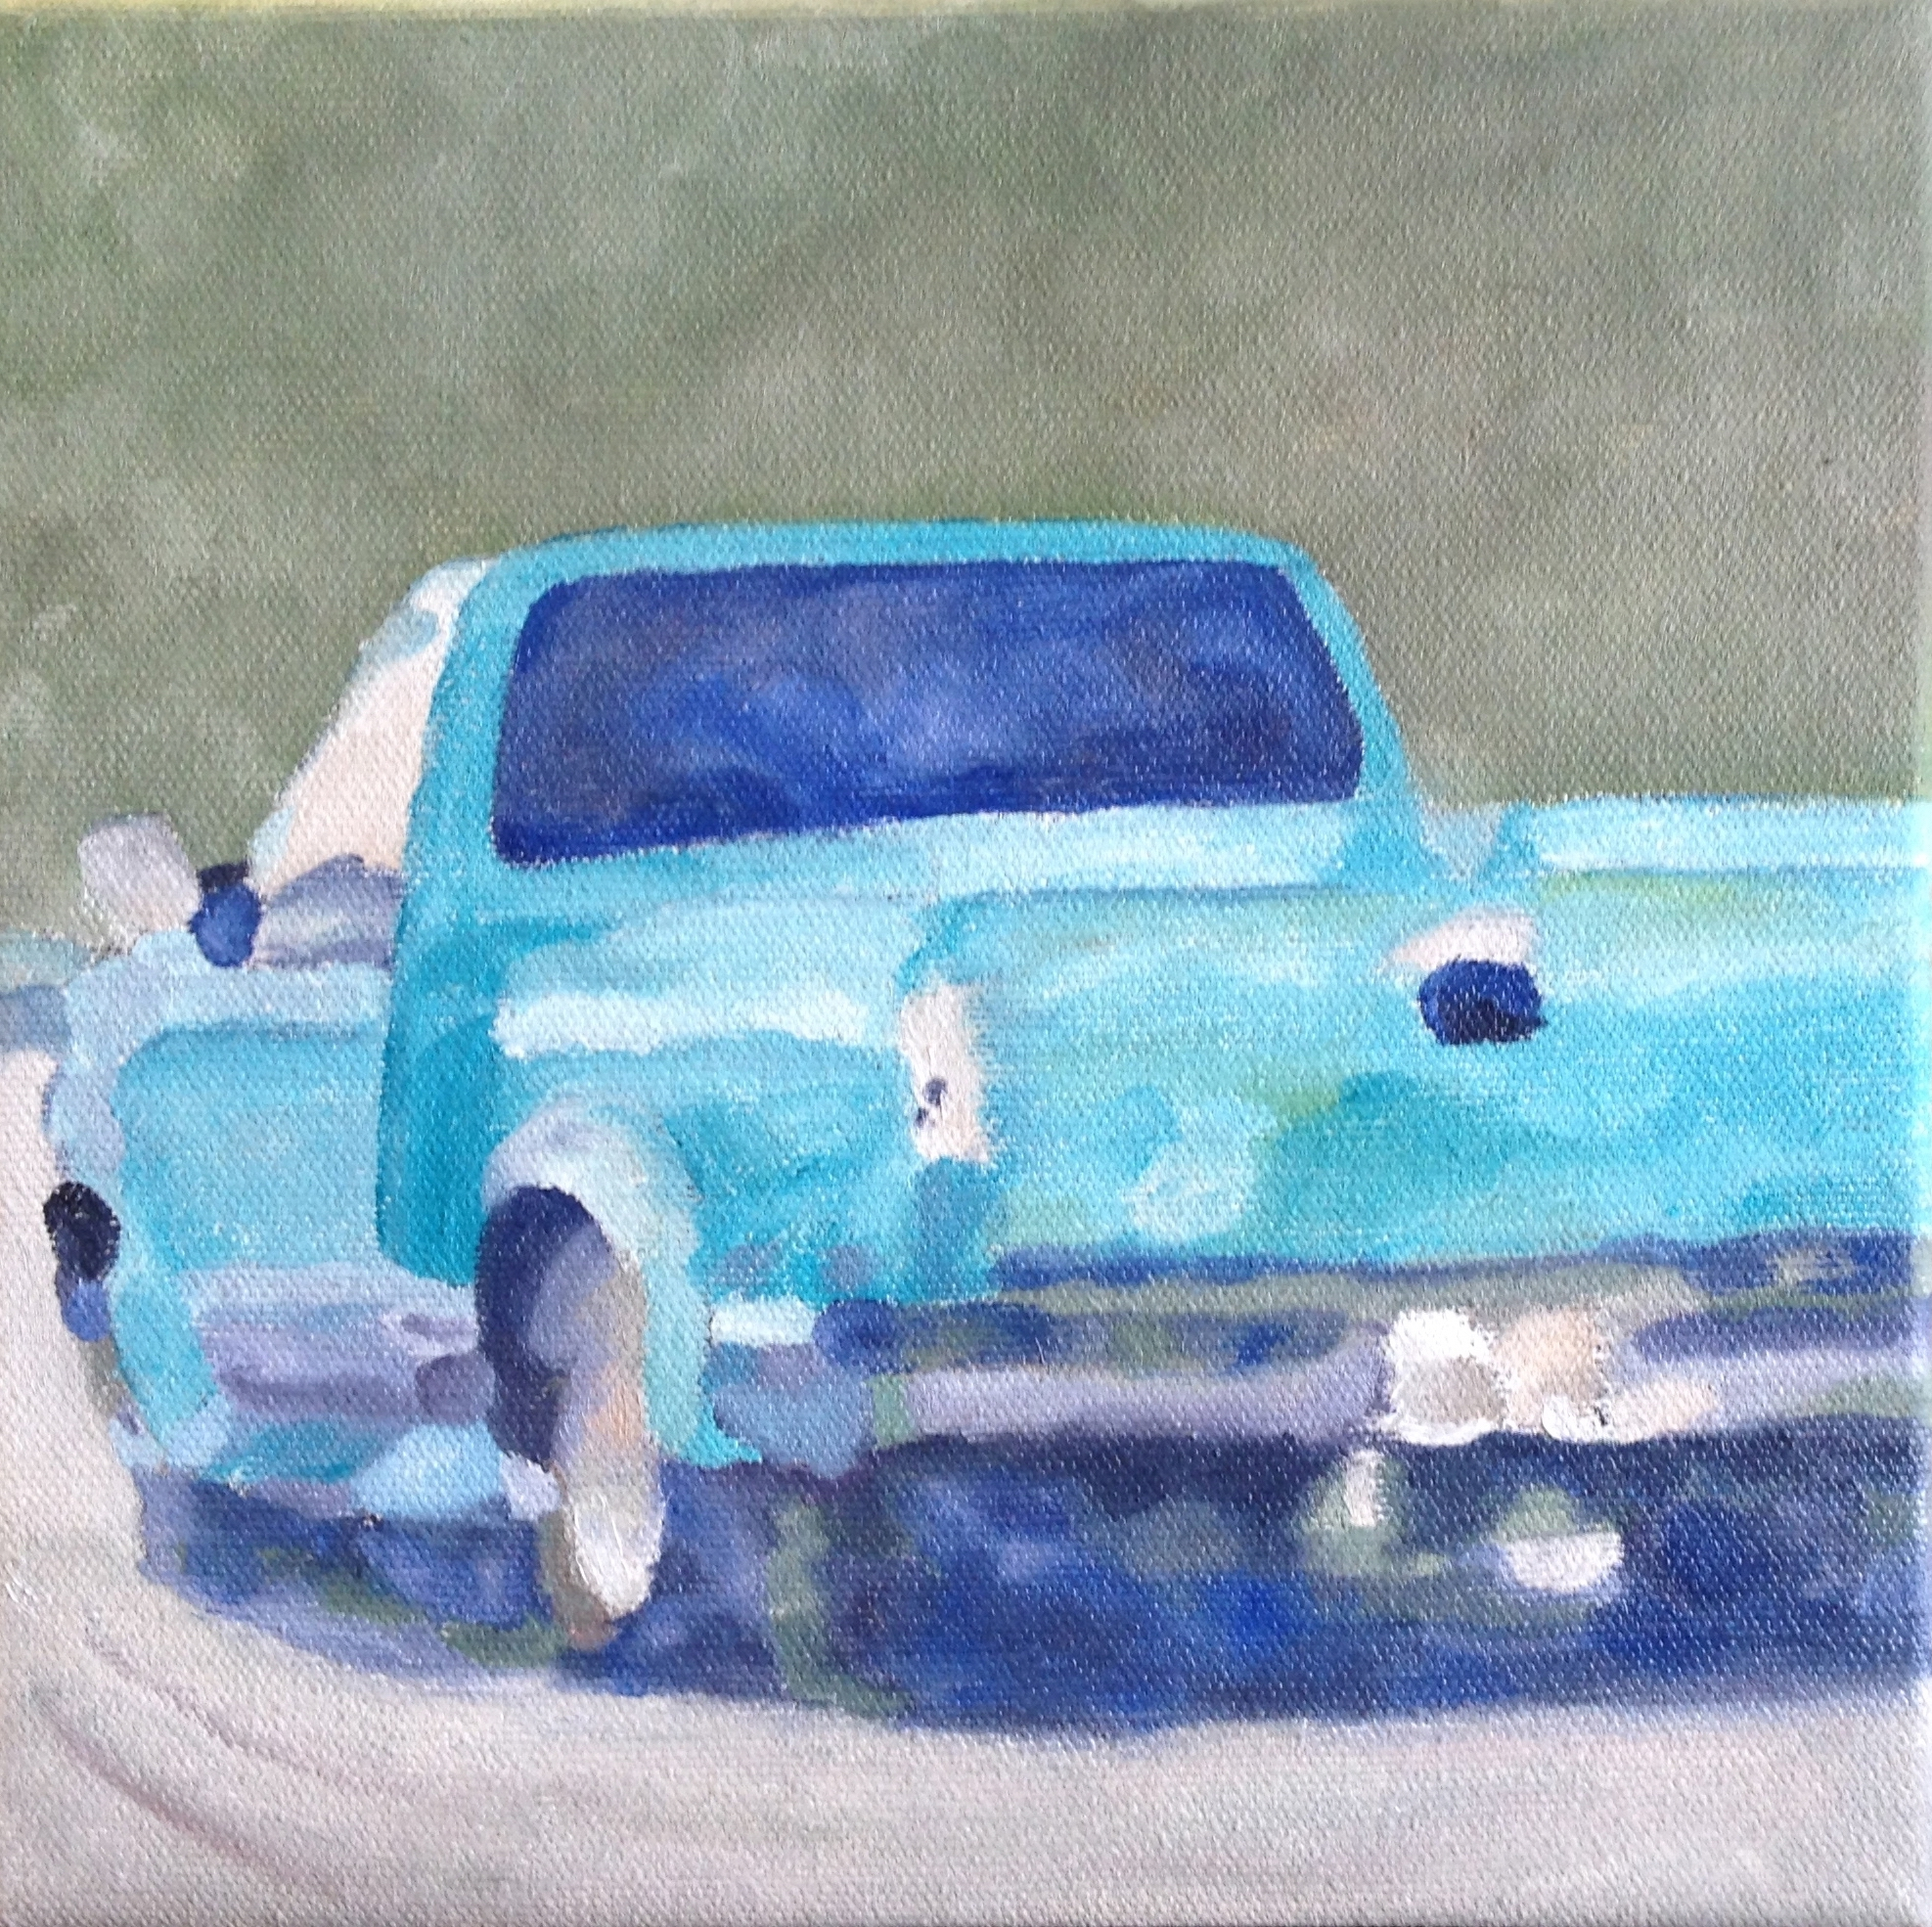 Turquoise Truck - 8 X 8